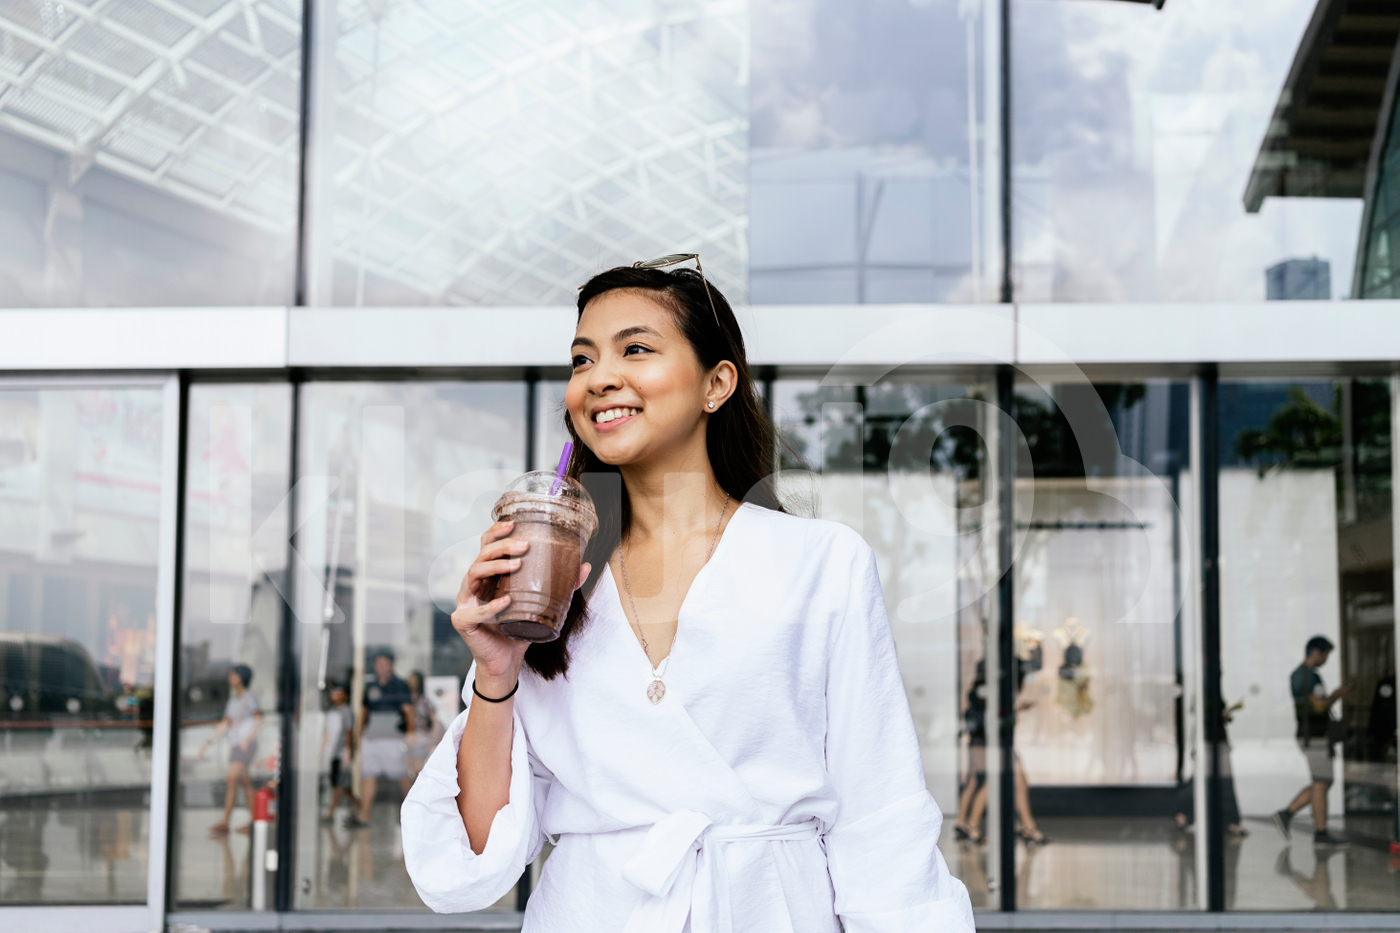 Young adult Asian woman standing in the mall holding a cup